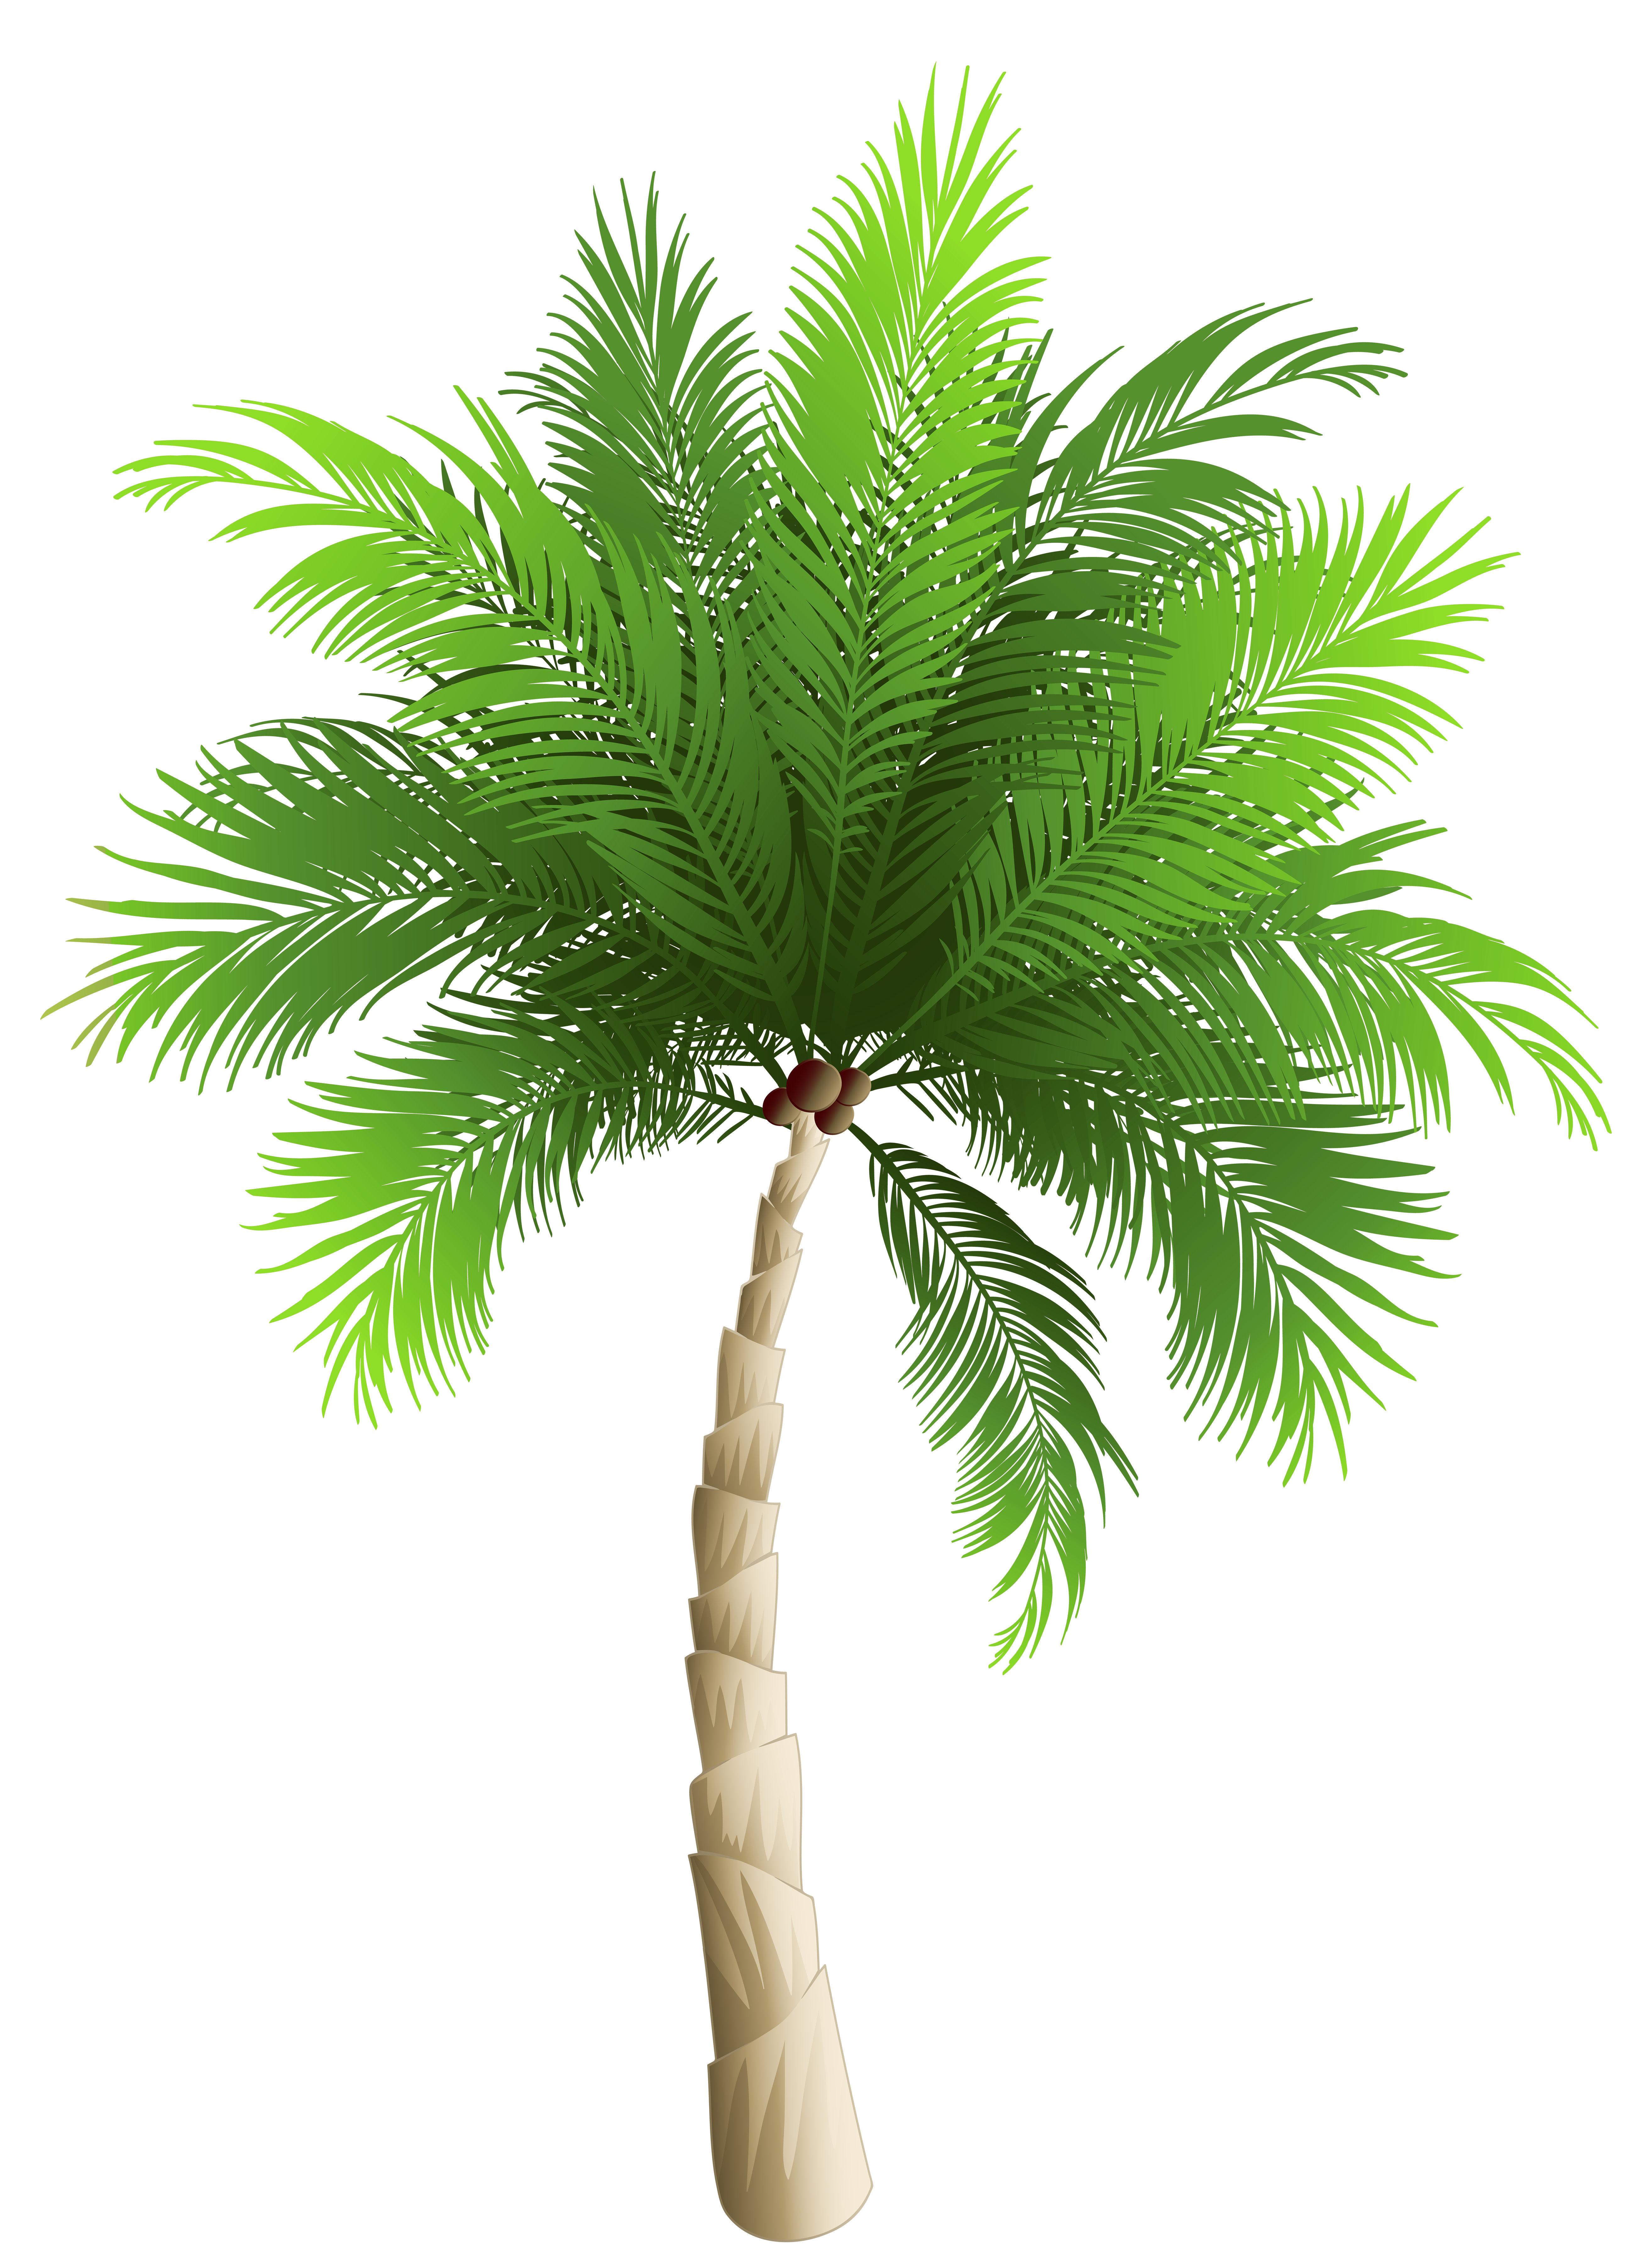 Palm Tree clipart real Party Png Palms Free Backgrounds